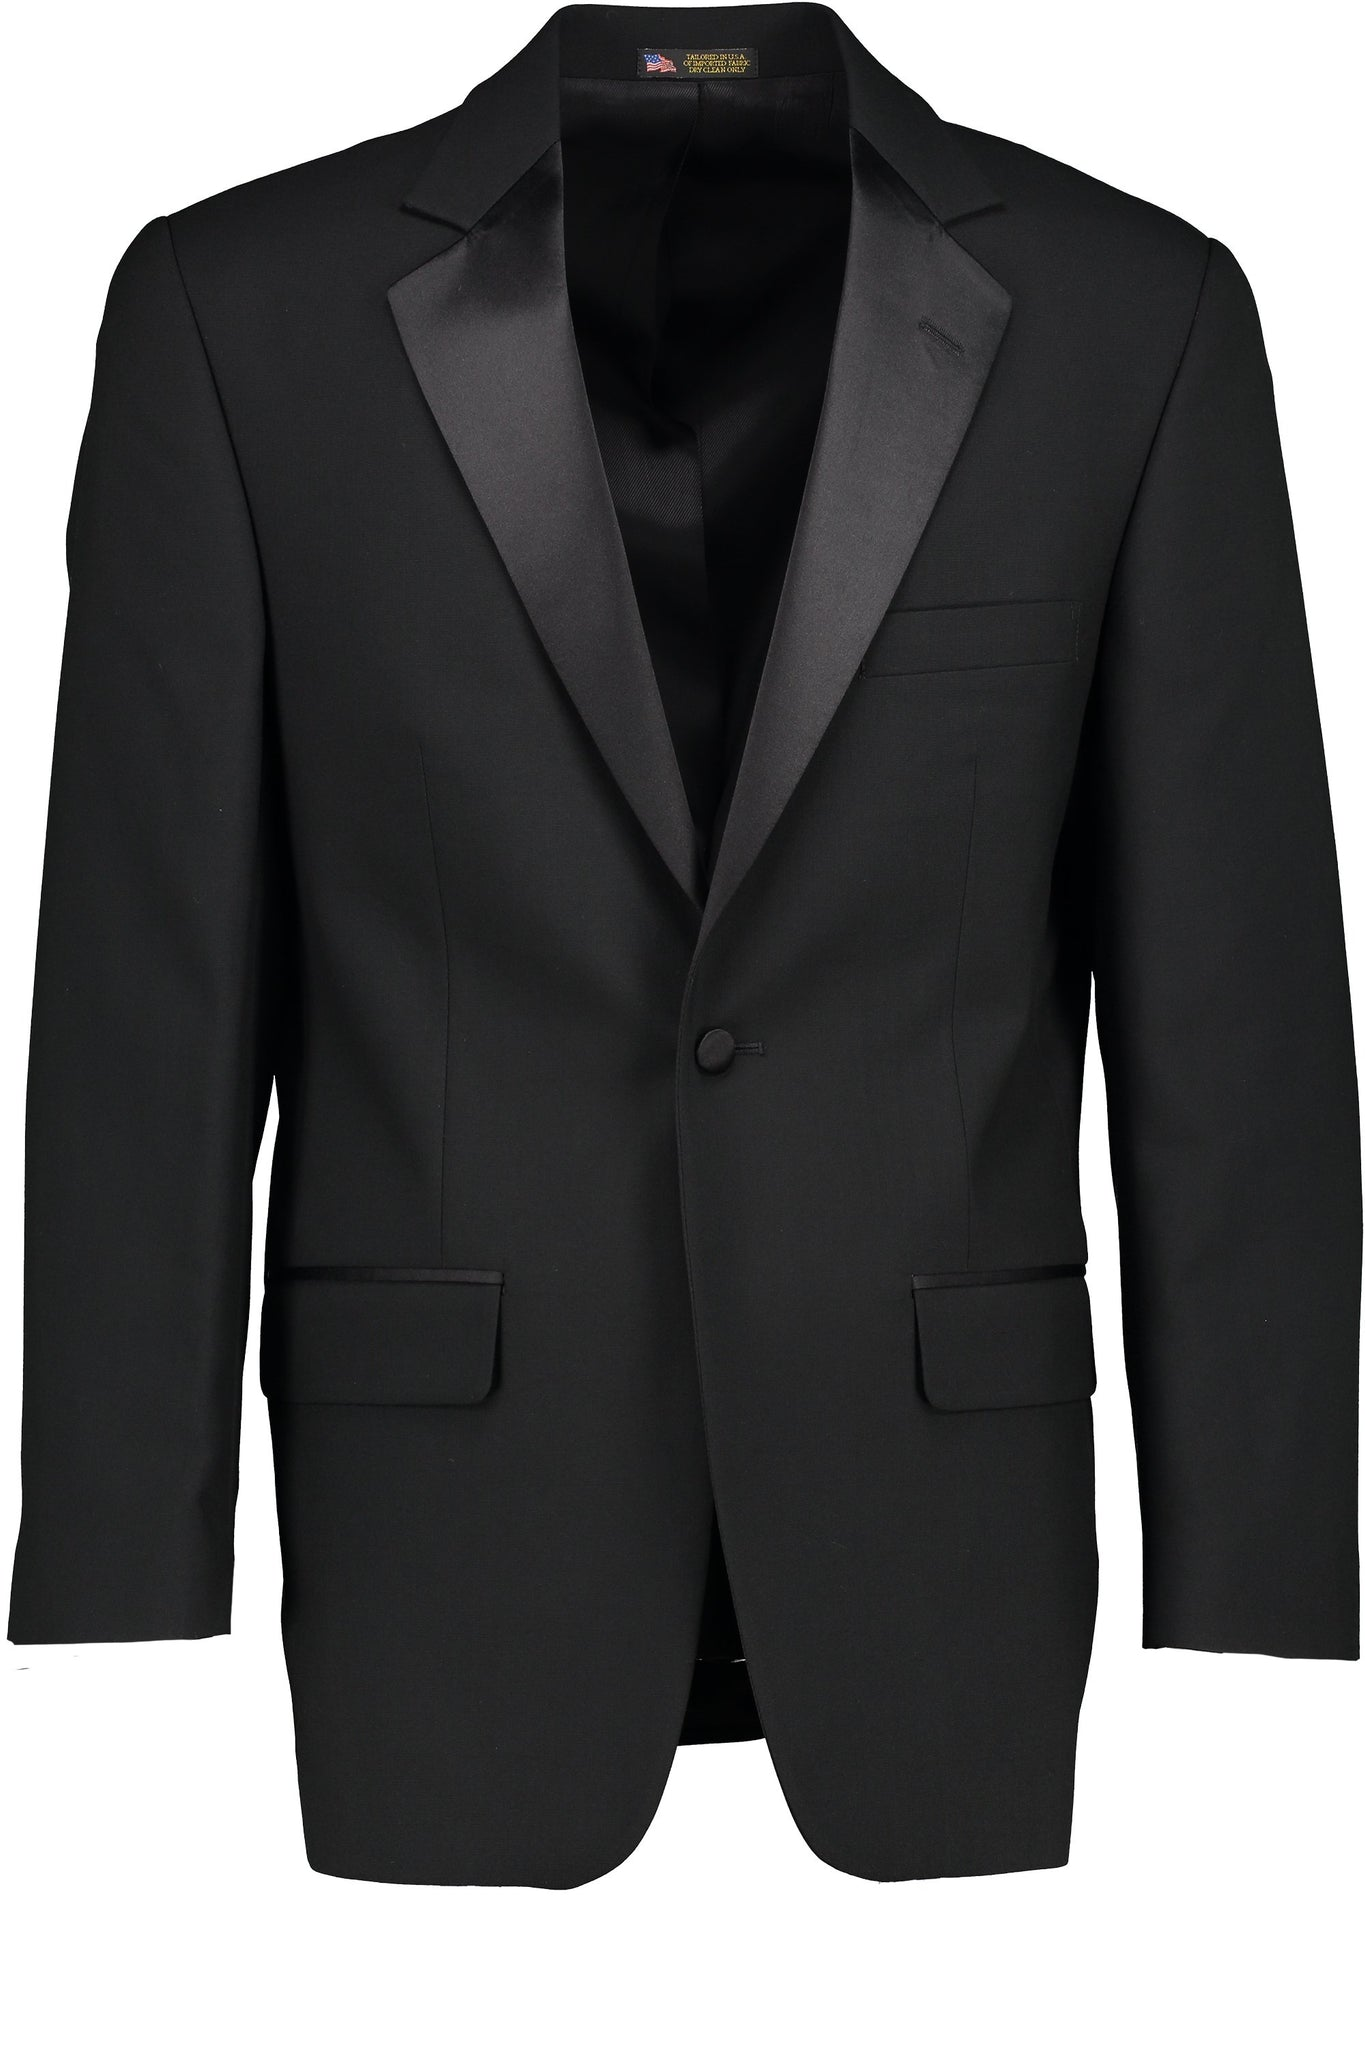 Classic Fit Black Wool Notch Lapel Tuxedo Jacket -  Hardwick.com